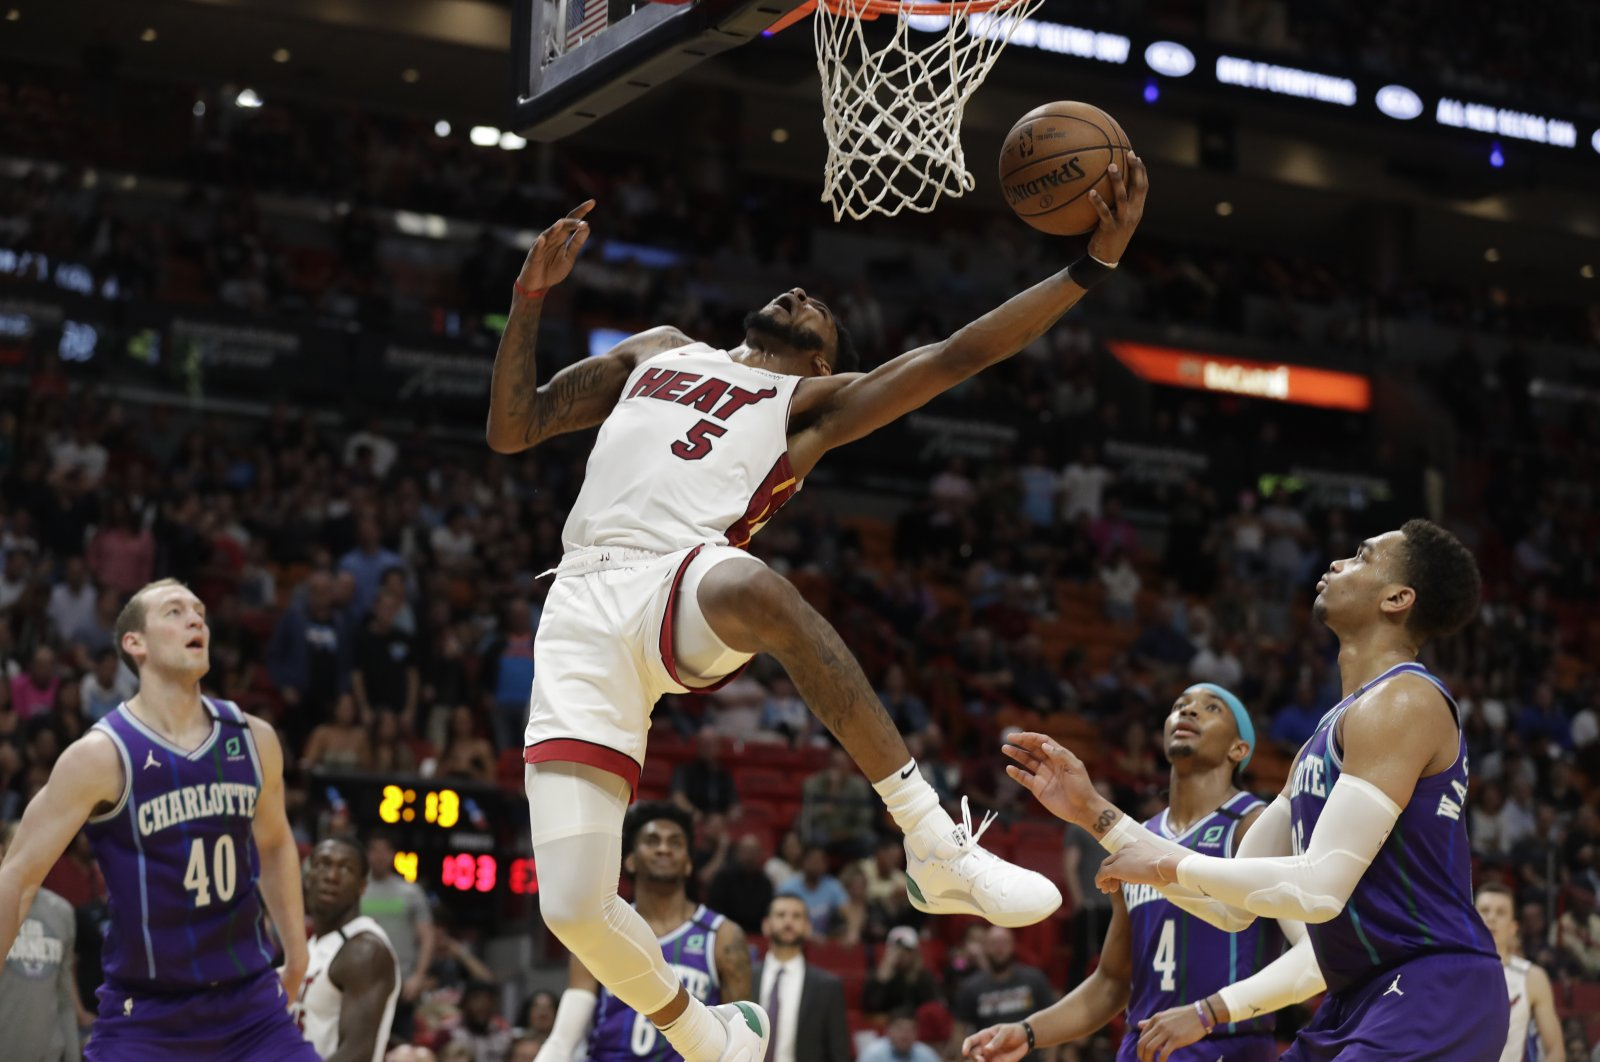 Miami Heat forward Derrick Jones Jr. (5) goes up for a shot during the second half of an NBA basketball game against the Charlotte Hornets, in Miami, March 11, 2020. (AP Photo)